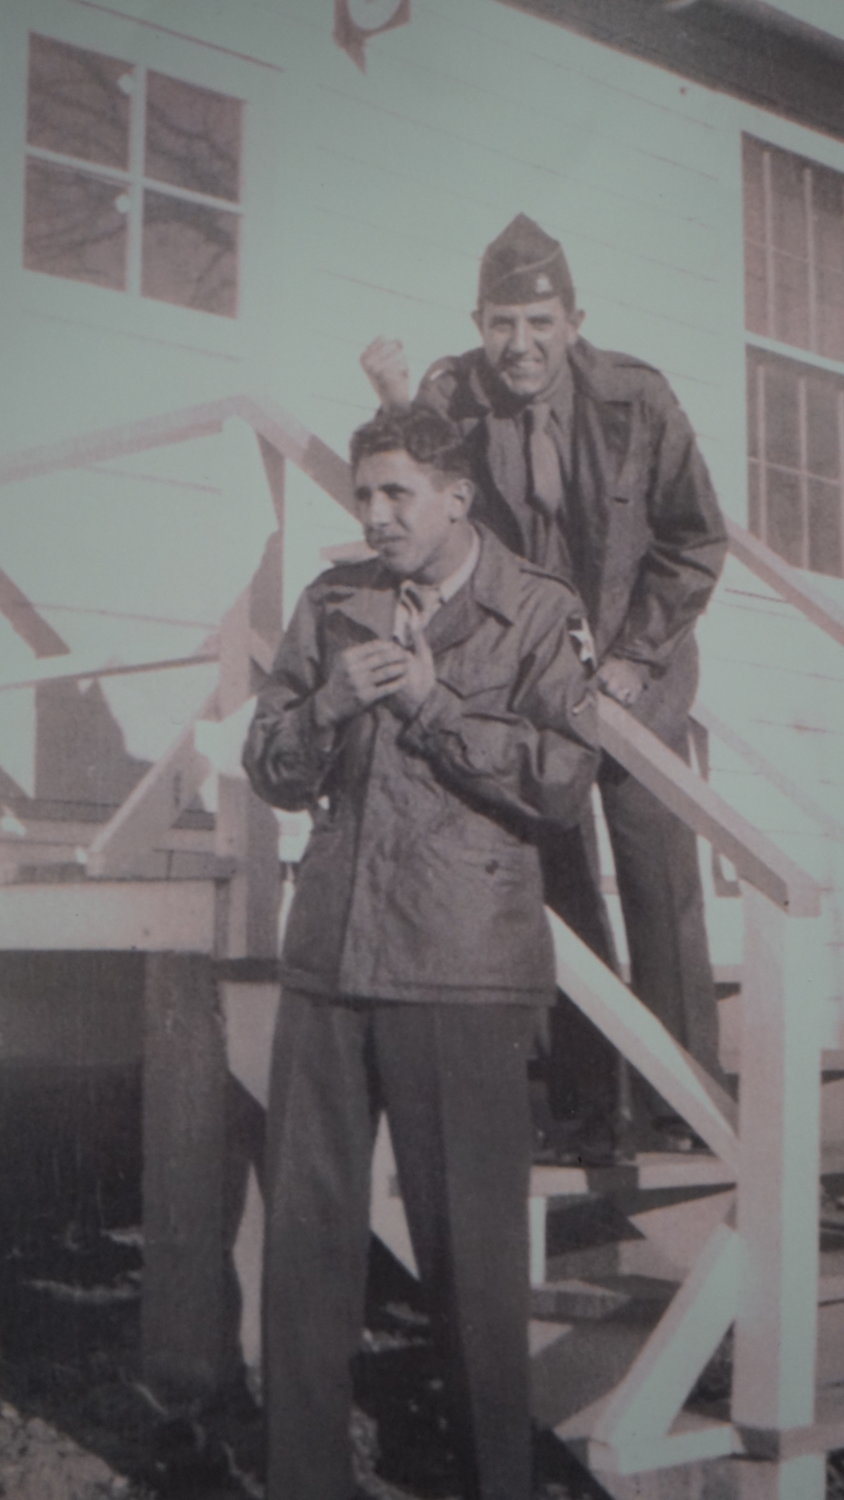 Valley Streamer Louis Palermo, left, in 1945. He was one of two from Valley Stream known to have directly taken part in the D-Day invasion.